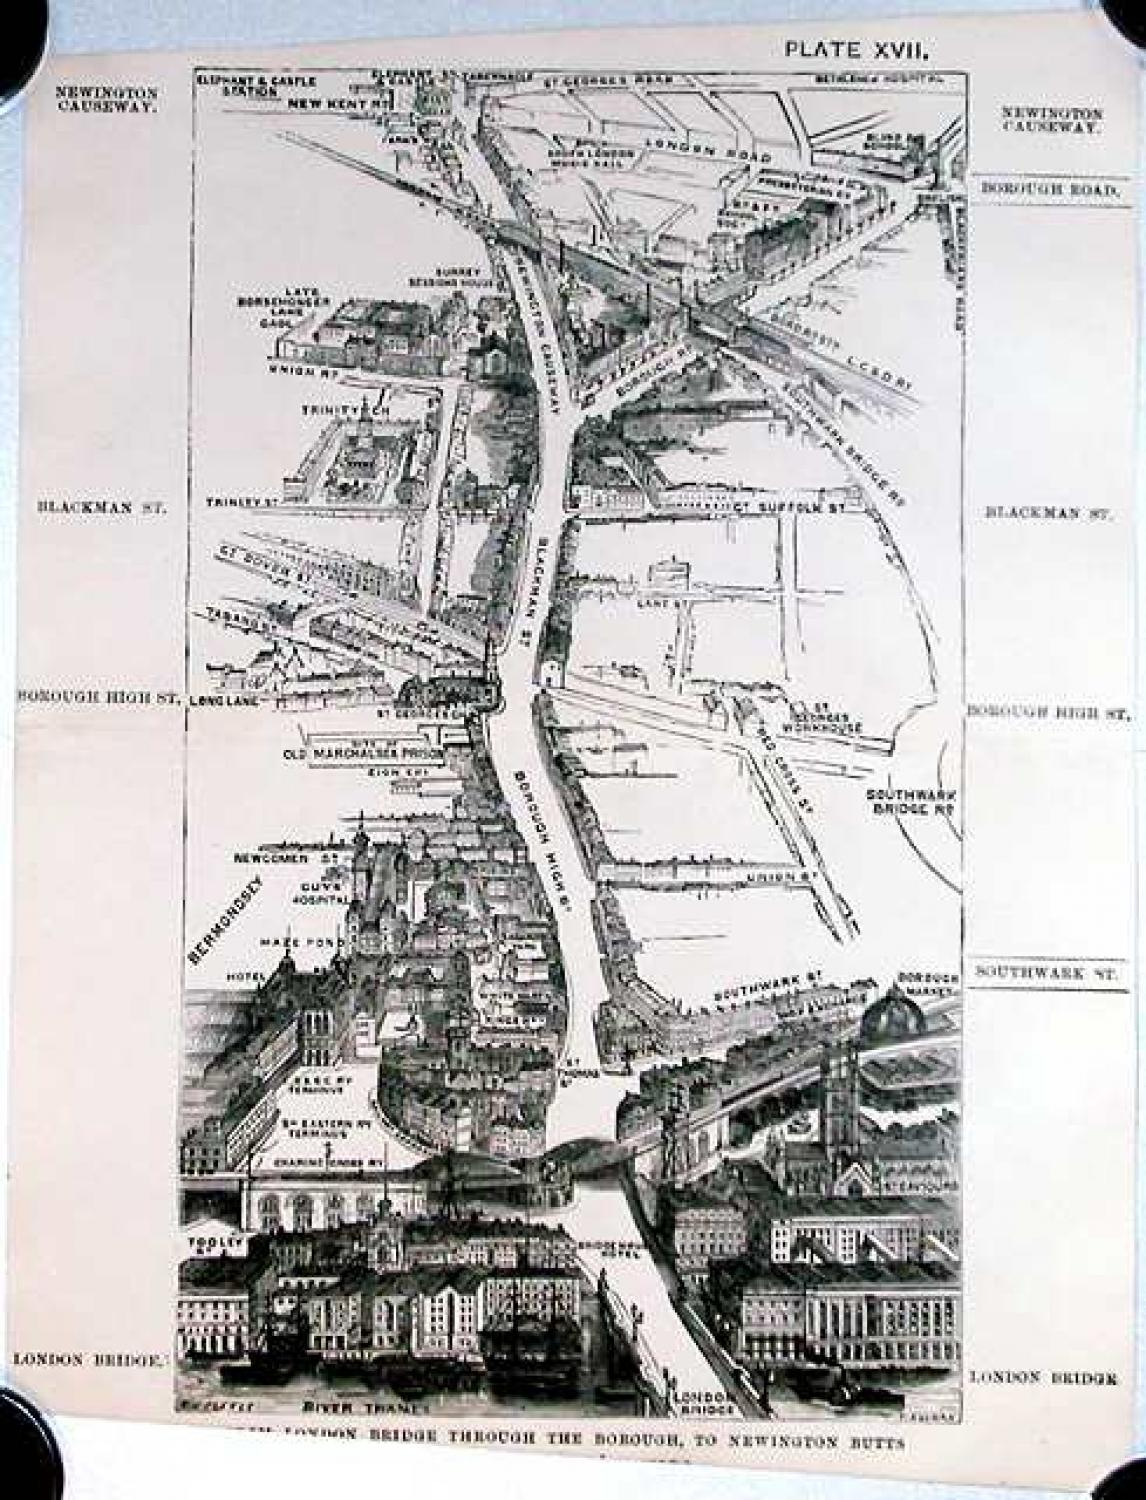 SOLD London in 1887, Plate XVII, From London Bridge through the Borough to Newington Butts